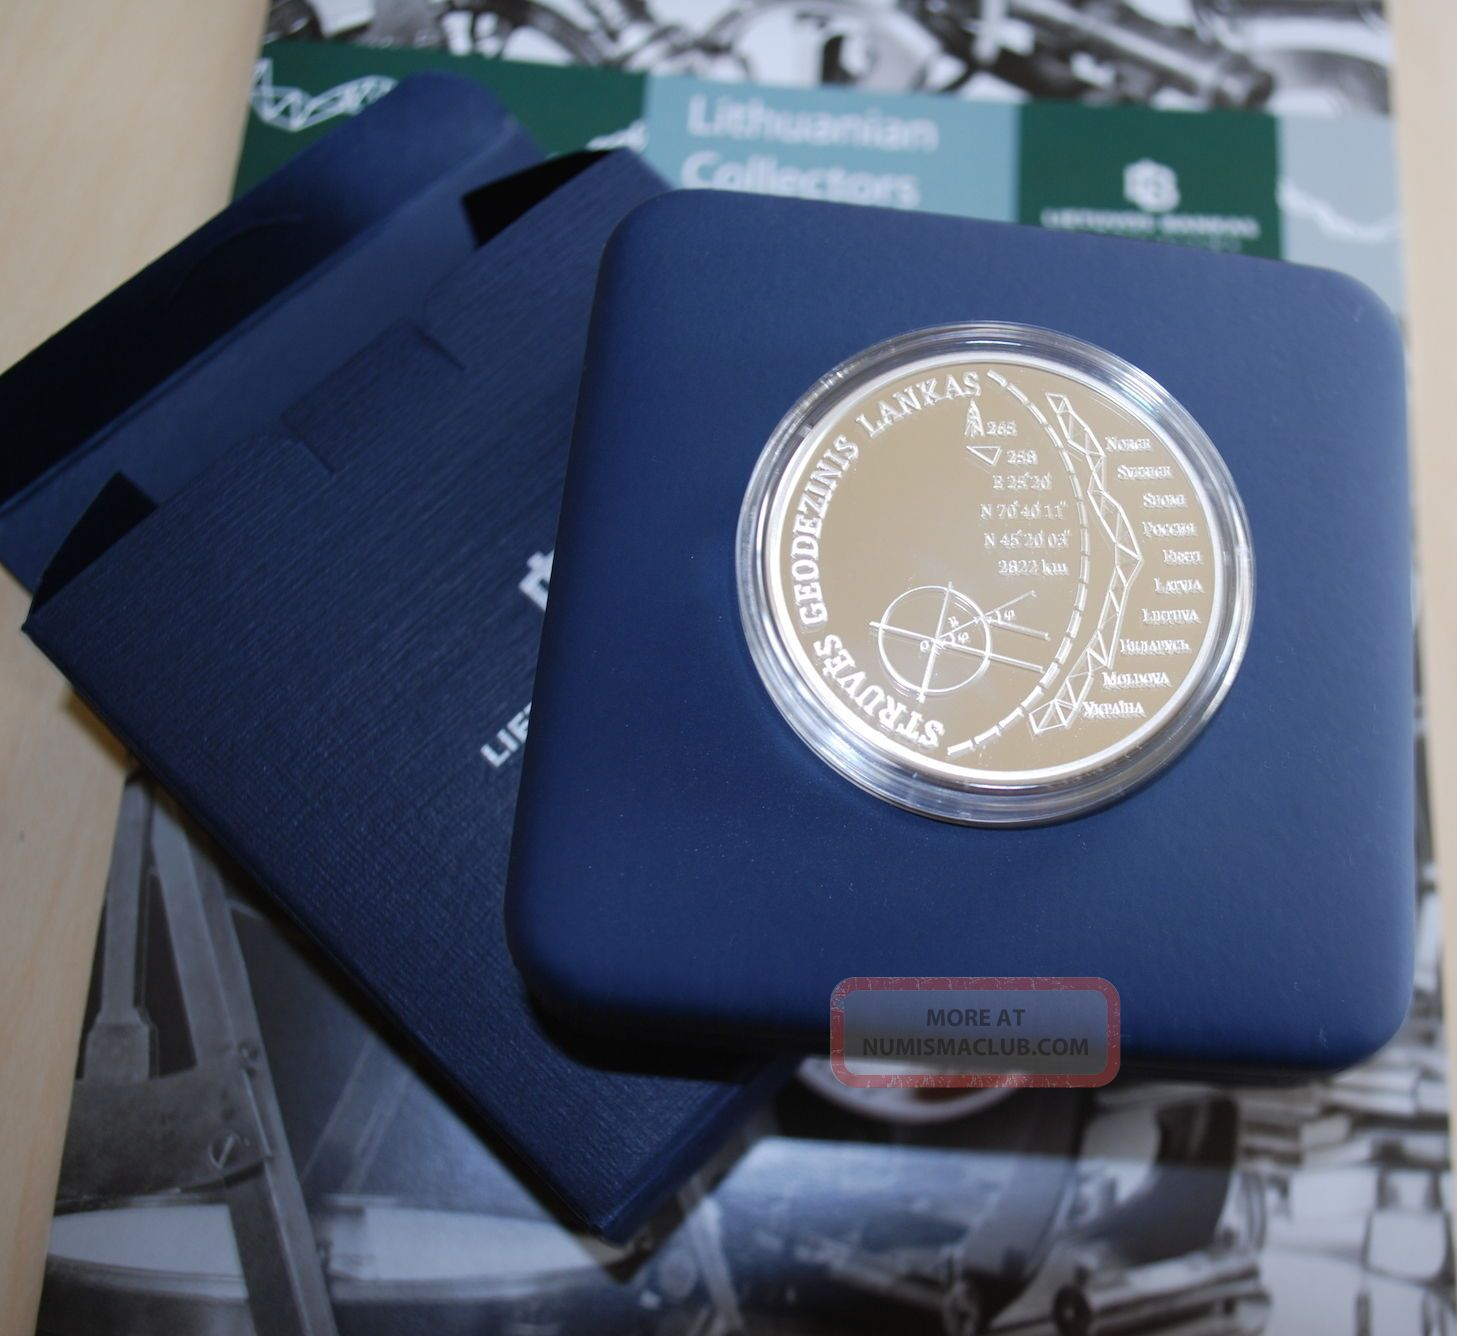 Struve Geodetic Arc Lithuania (unesco World Heritage) 20 Eurocsilver Proof Coin Europe photo